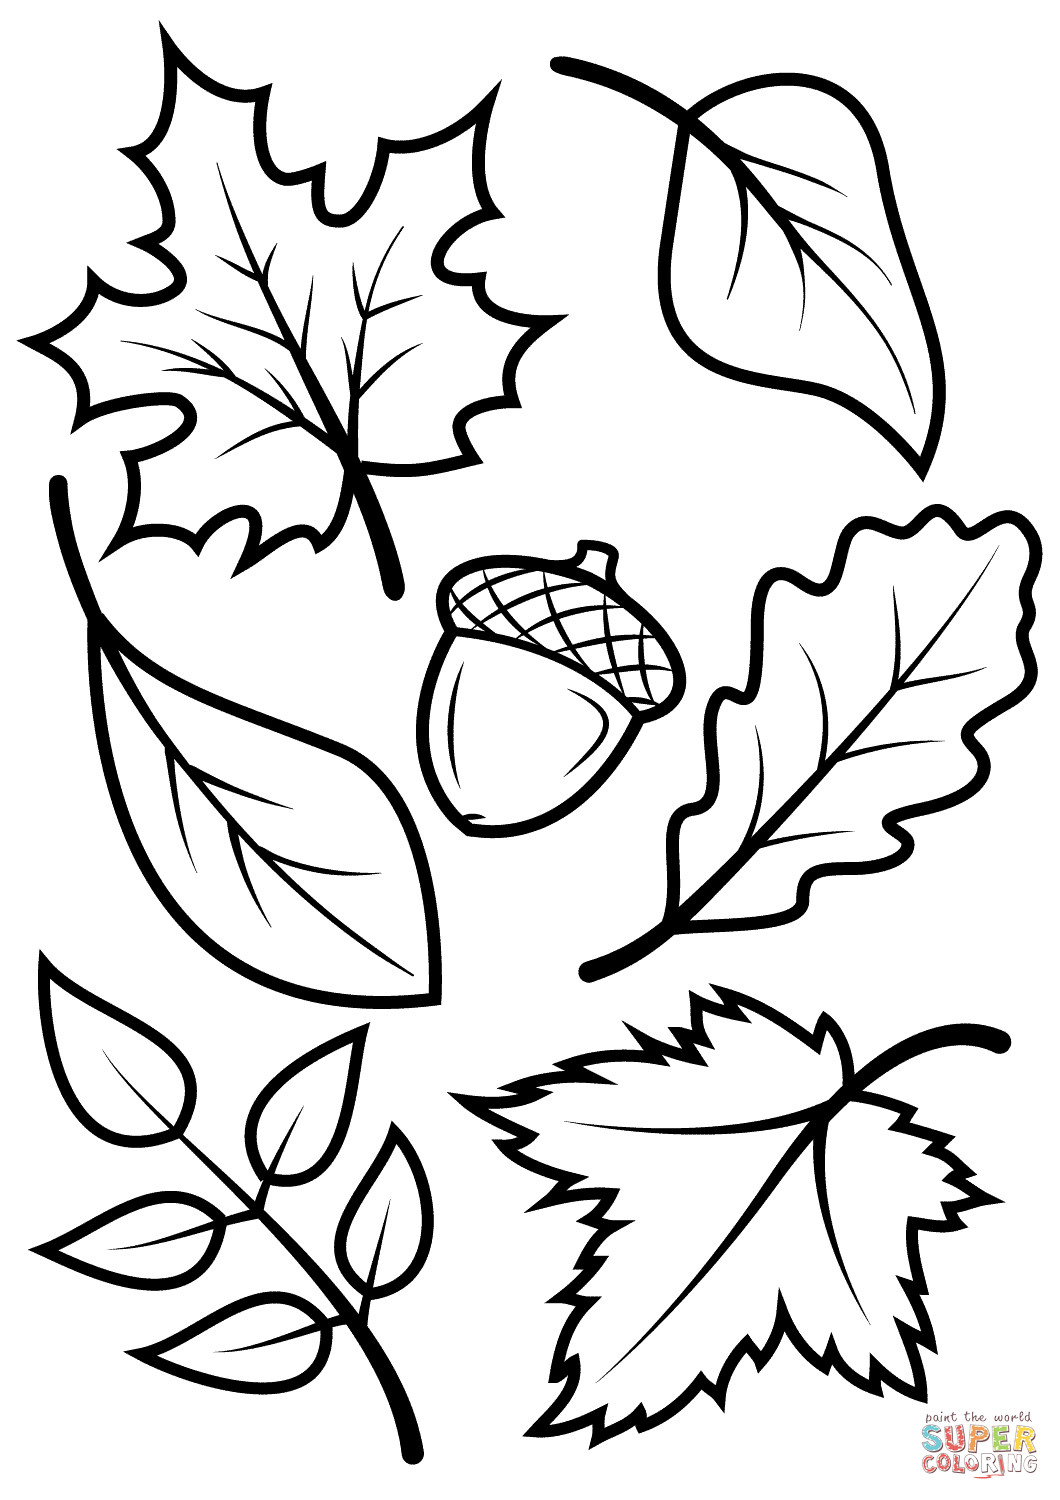 Fall Leaves Coloring Sheet  Fall Leaves and Acorn coloring page